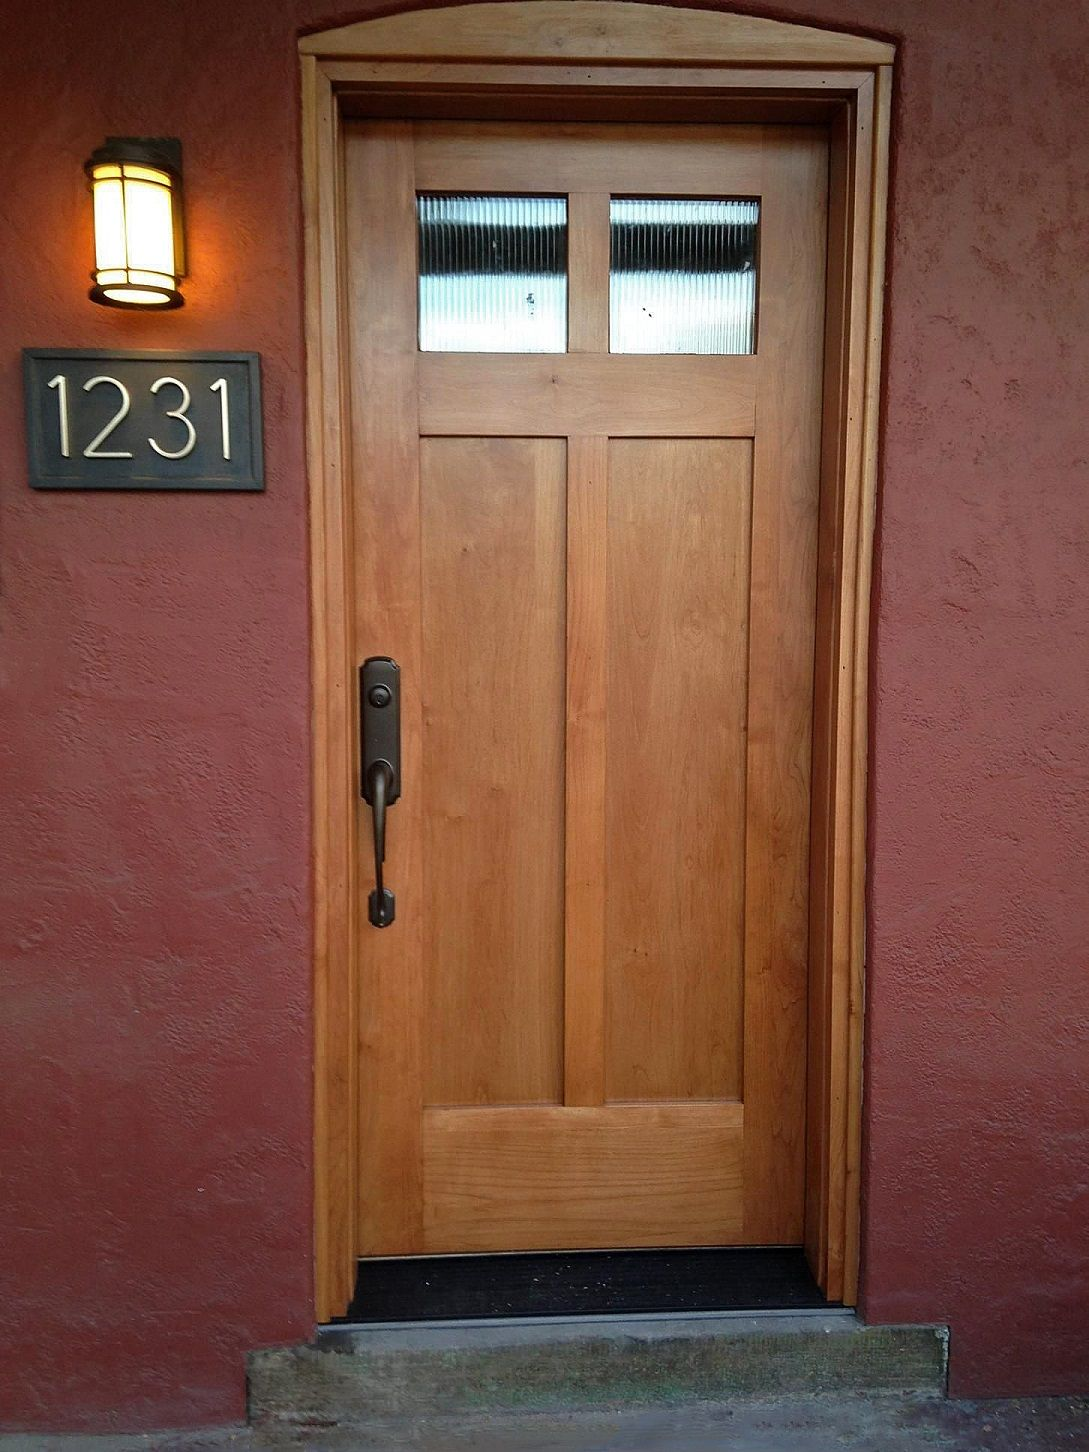 The jamb is the wood framework that the door is set in. The casing ...